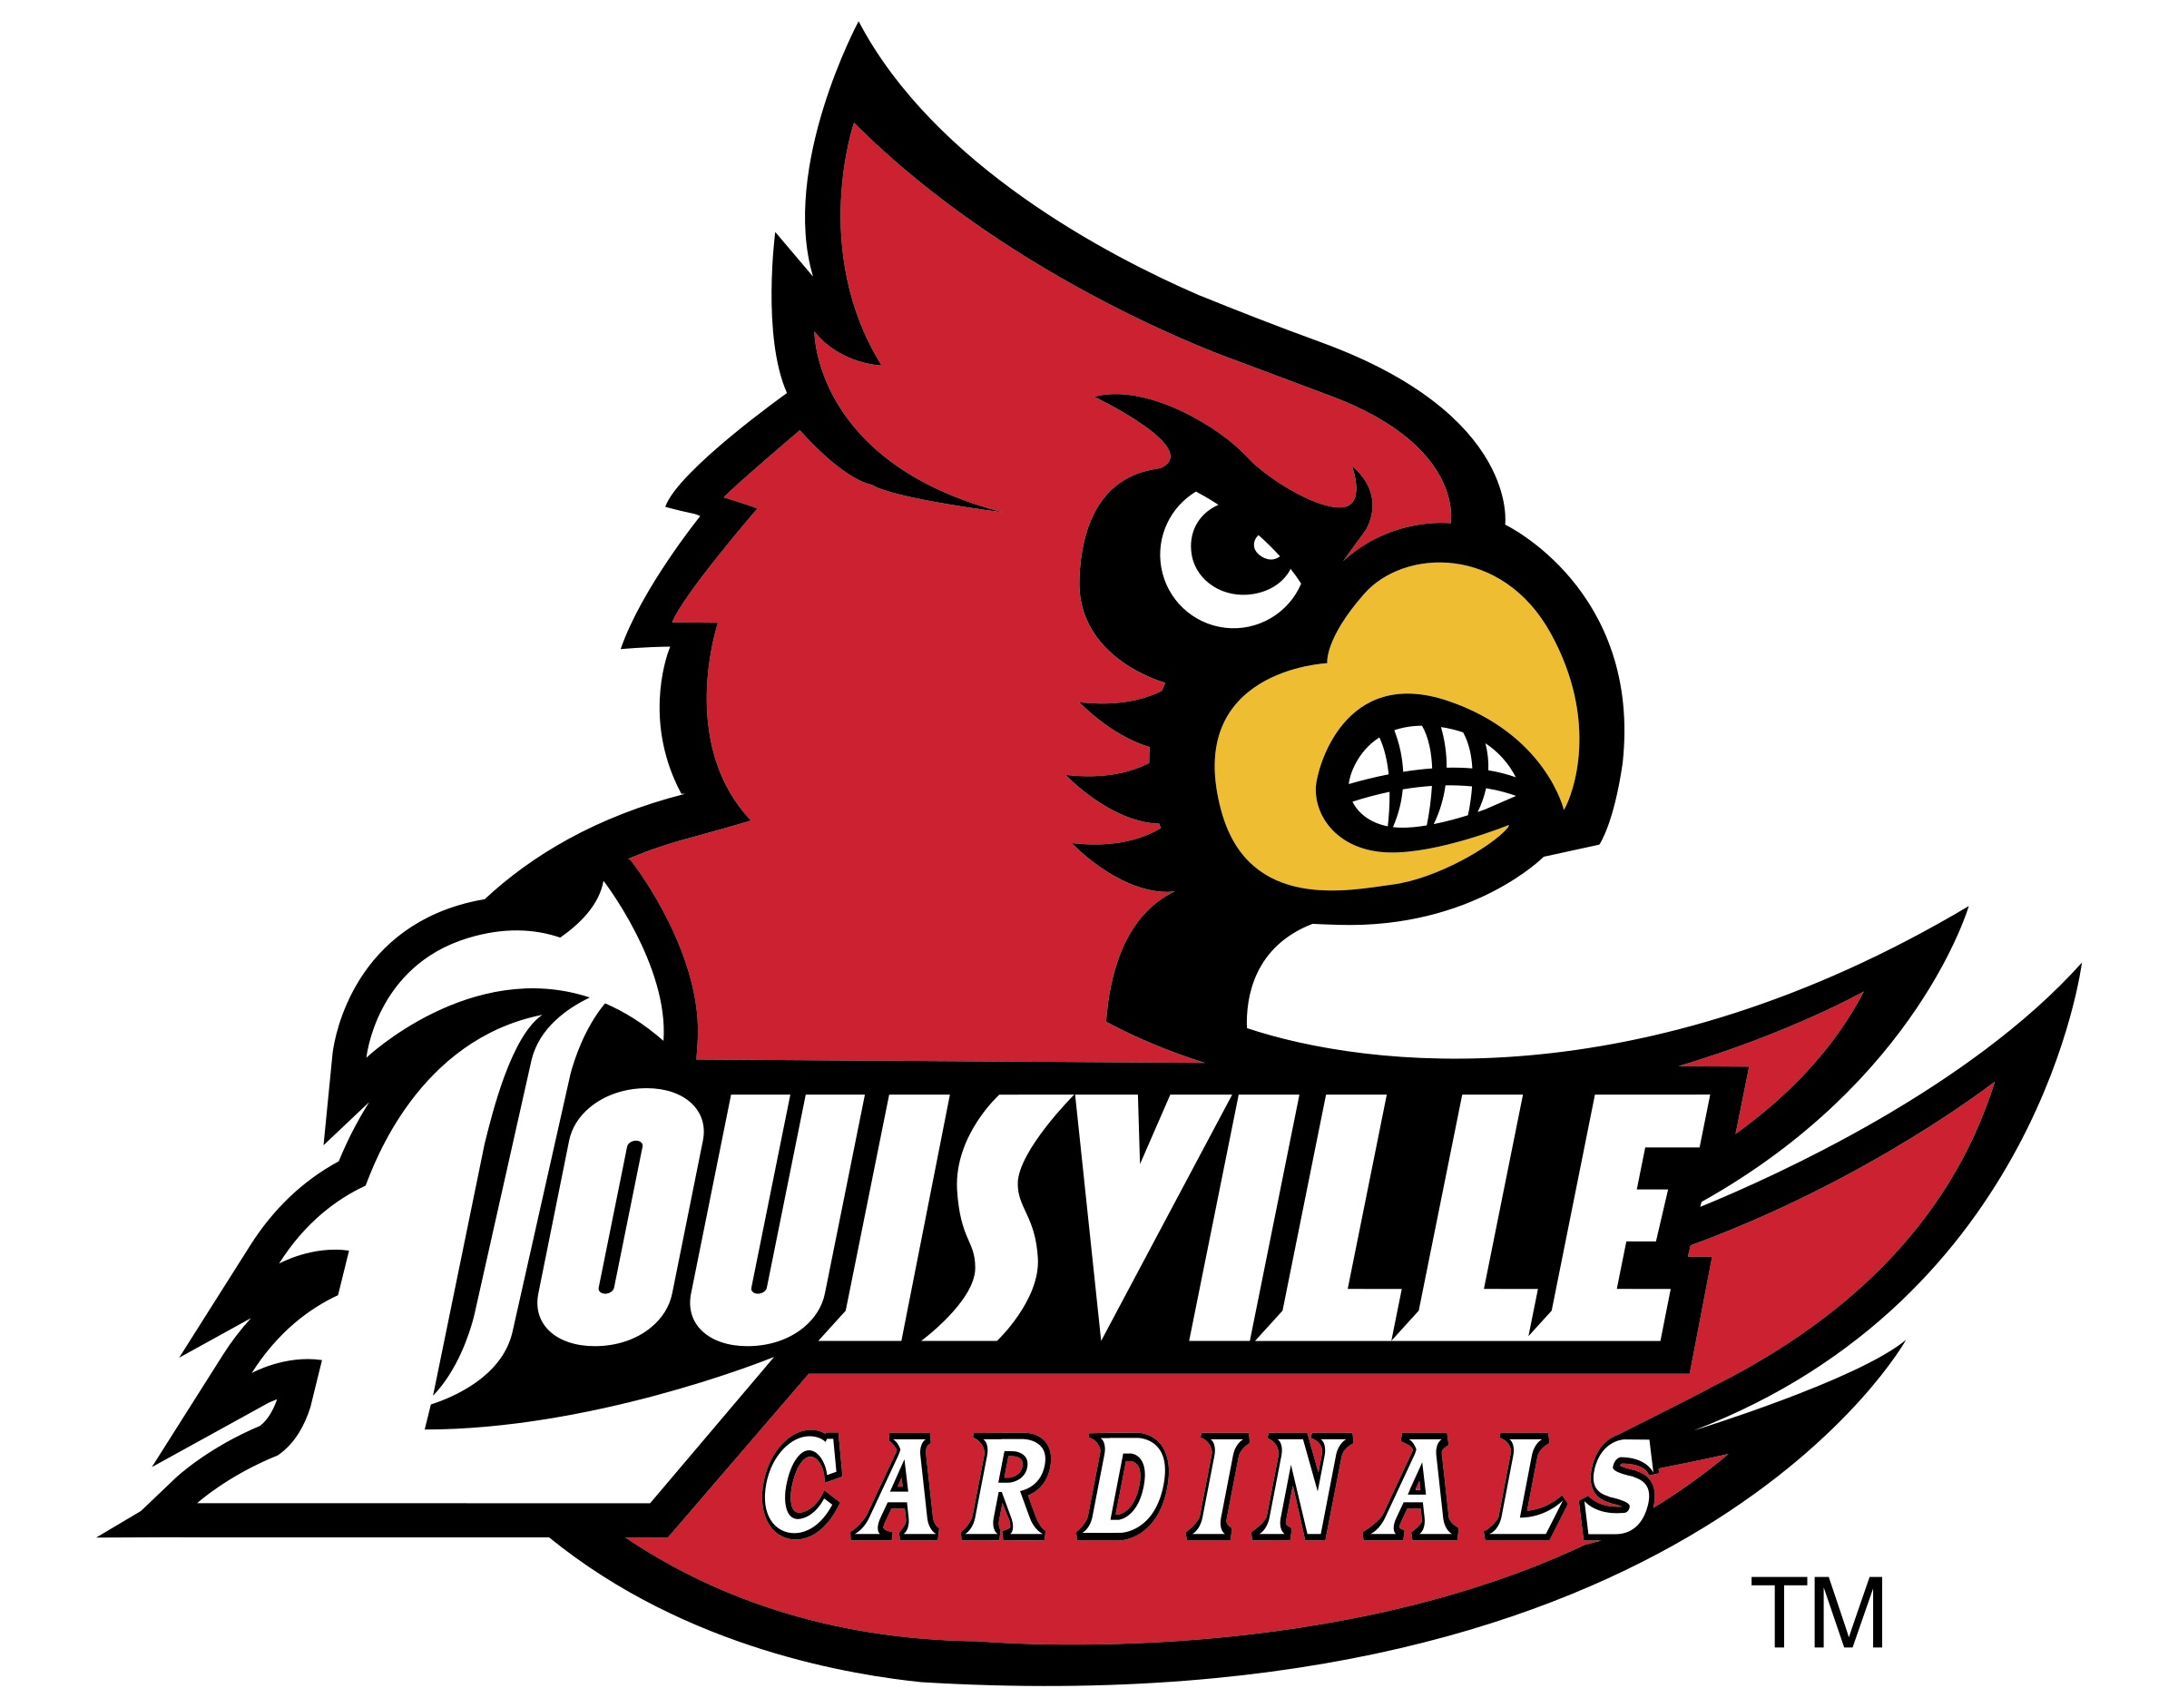 louisville-cardinals-logo-png-transparent.jpg